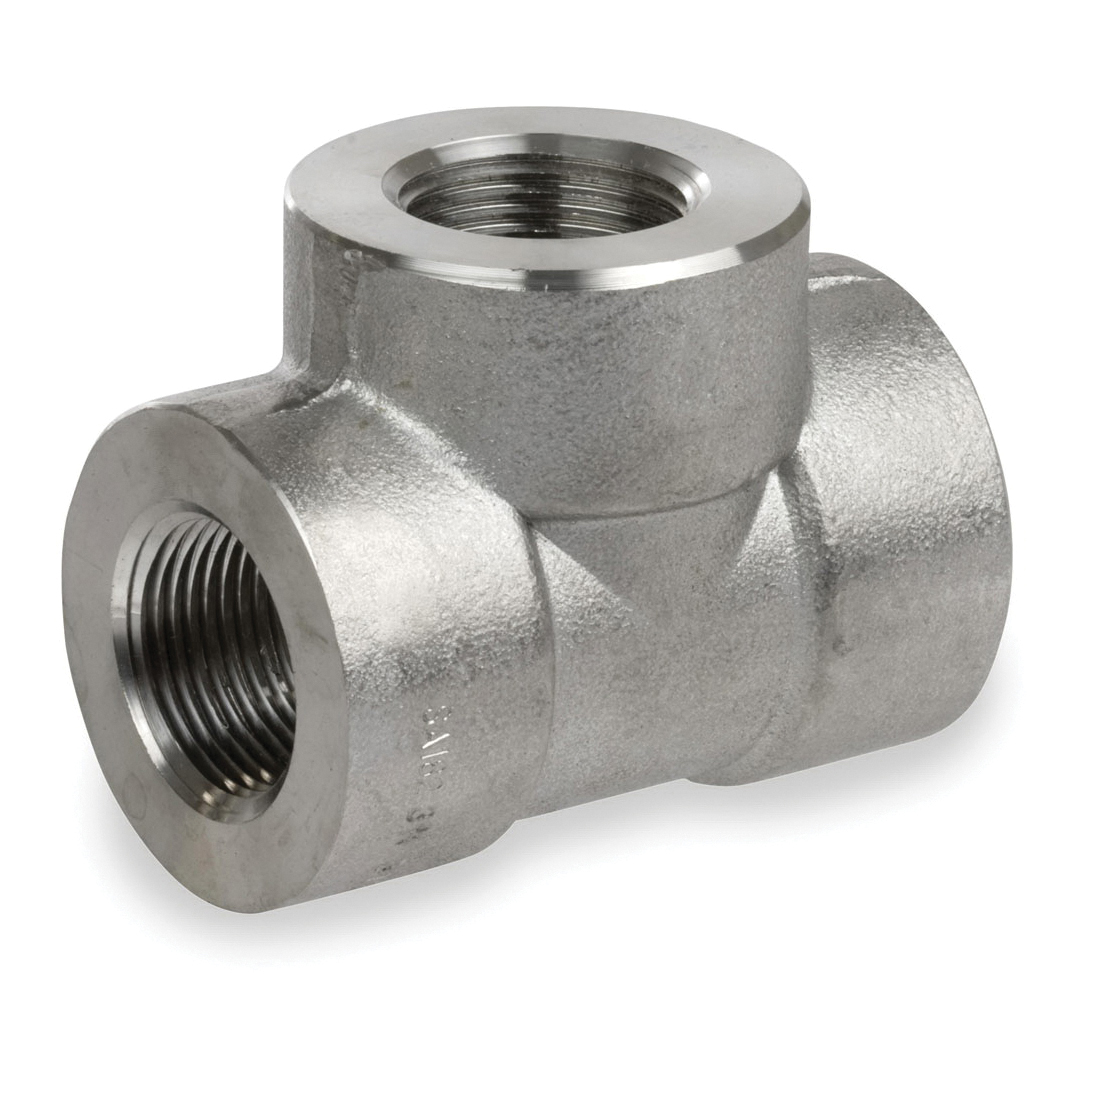 Smith-Cooper® S4034T 024 Tee, 2-1/2 in, Threaded, 3000 lb, 304L Stainless Steel